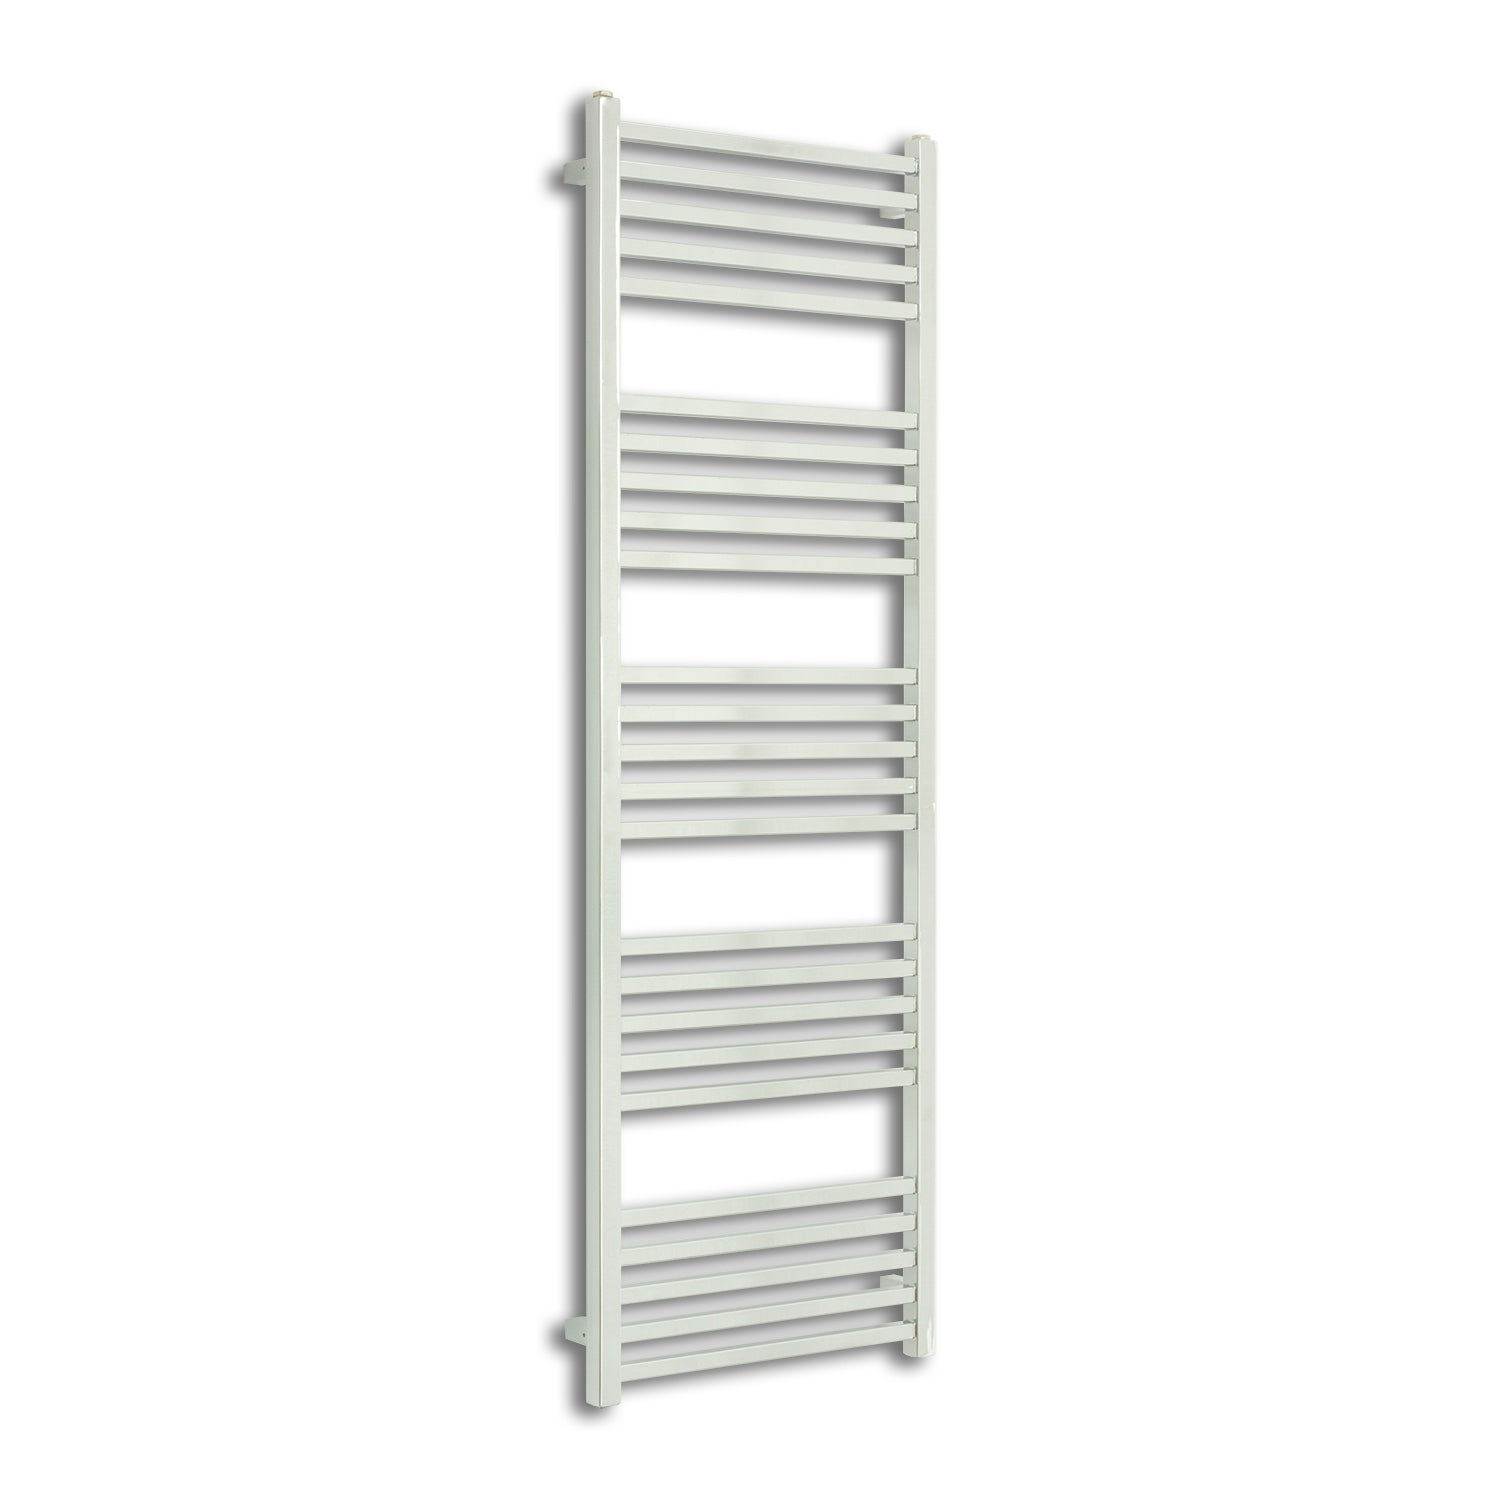 500mm Wide 1500mm High Chrome Towel Rail Radiator